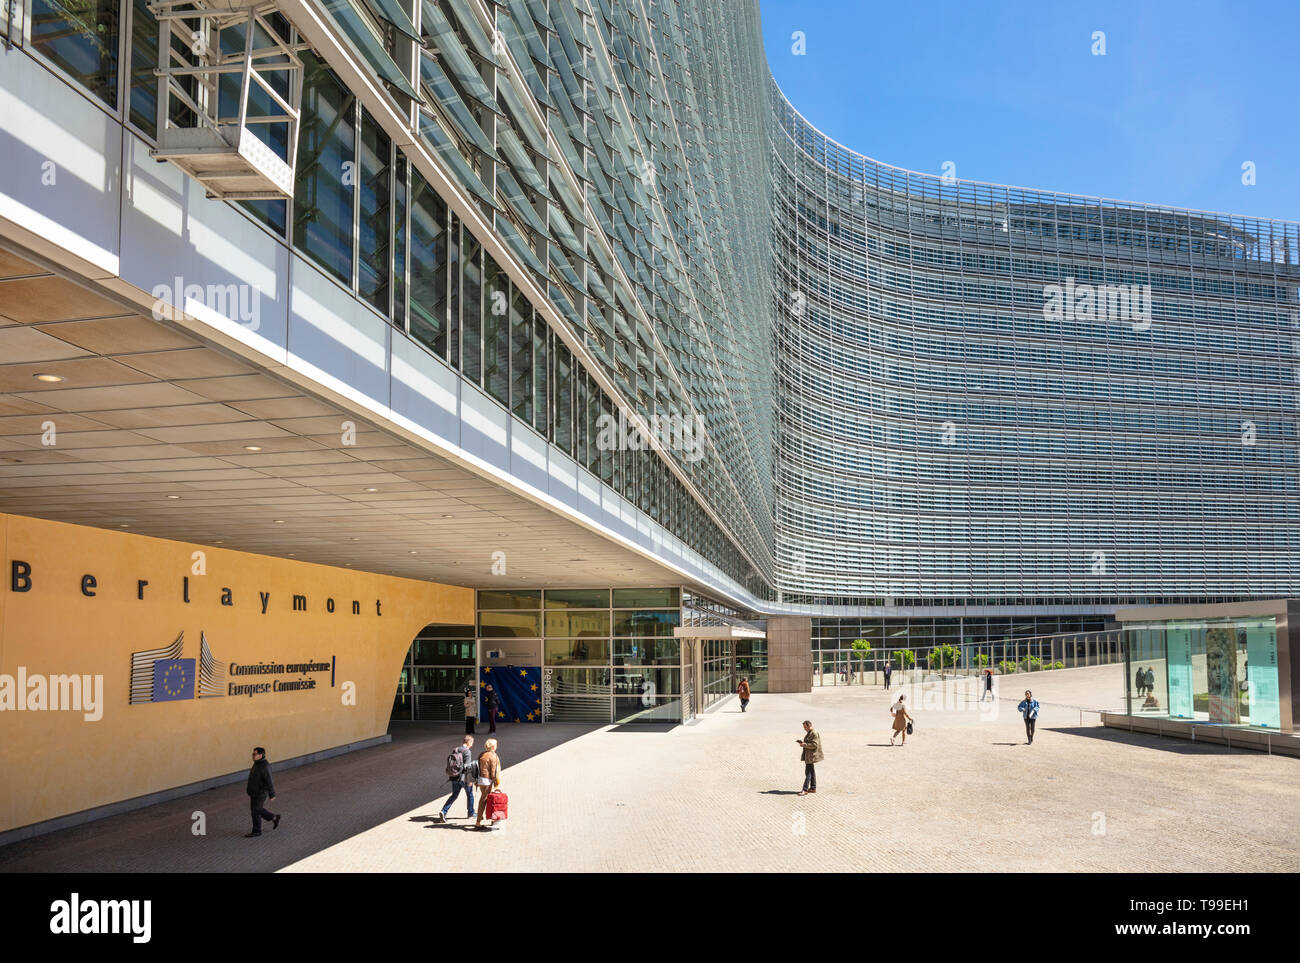 European Commission headquarters building EU commission building european commission building Berlaymont building, Brussels, Belgium, EU, Europe - Stock Image